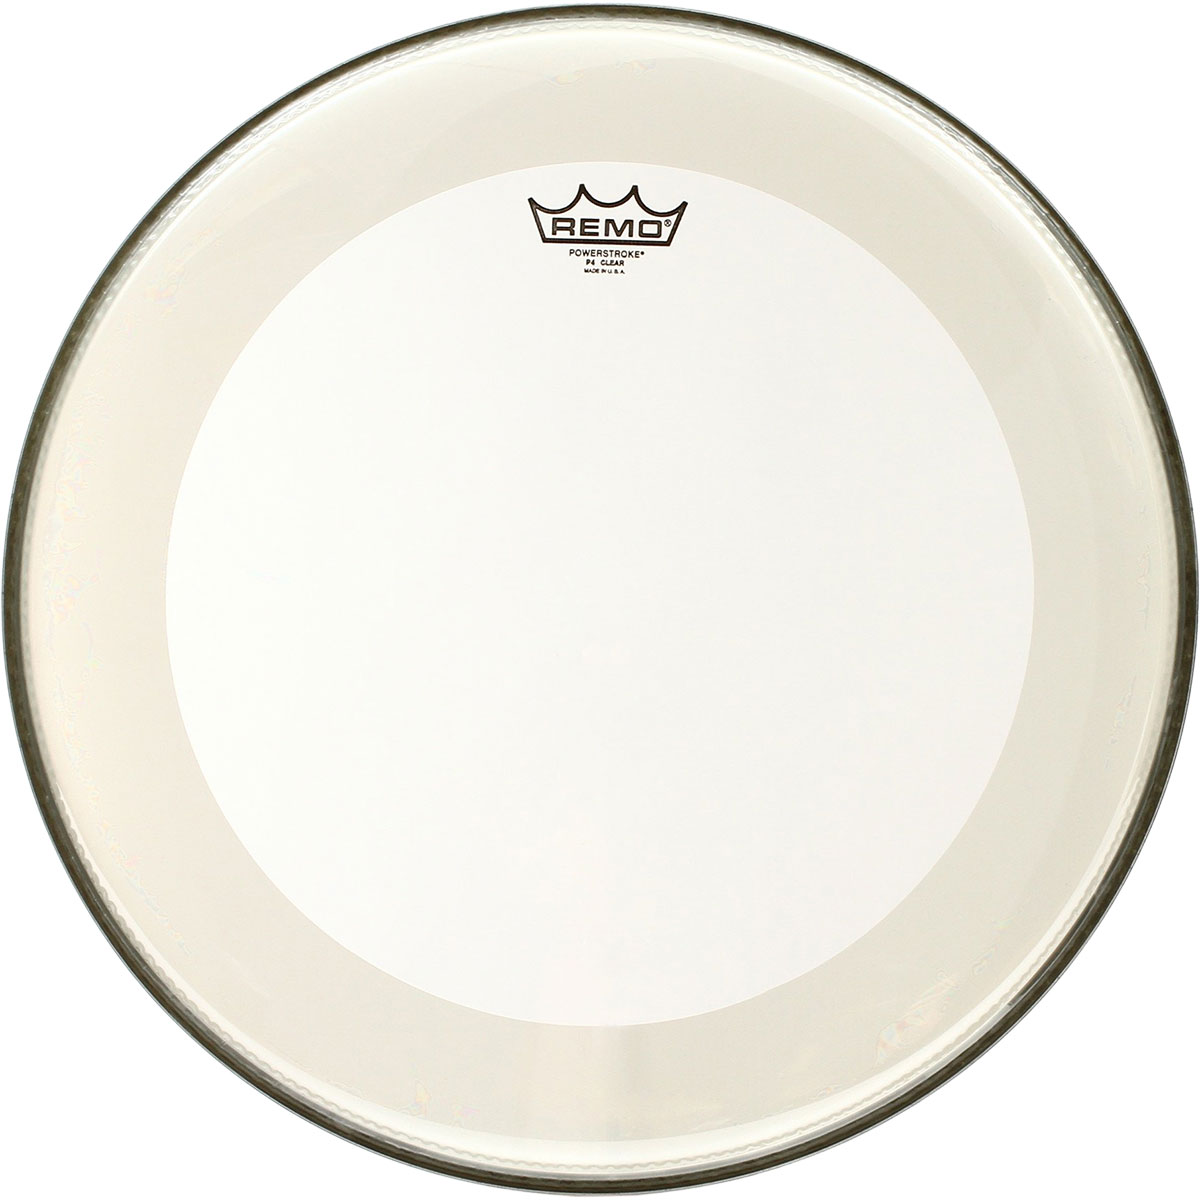 "Remo 18"" Powerstroke P4 Clear Bass Drum Head with Falam Patch"